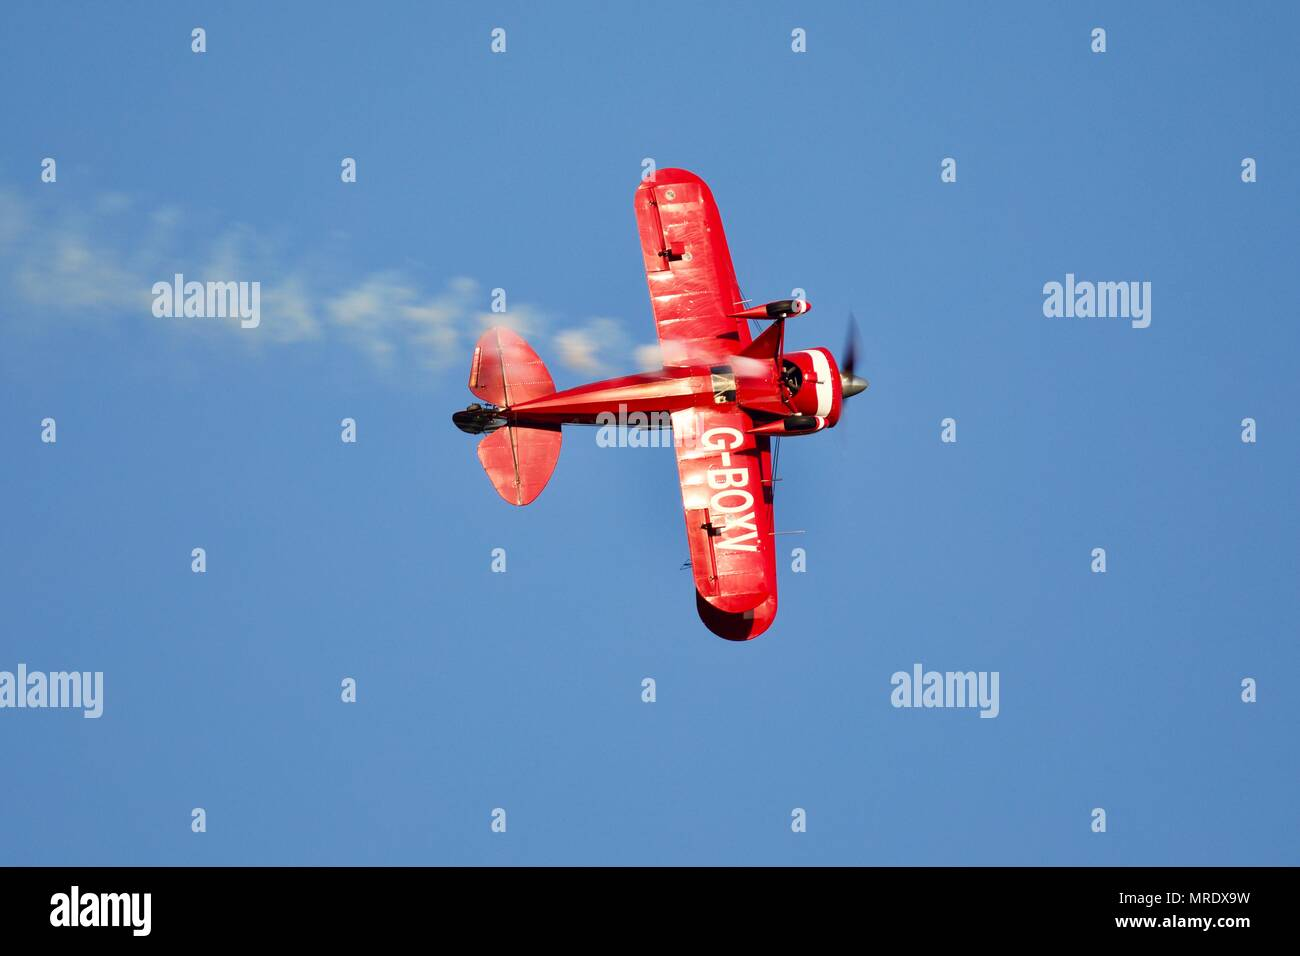 Pitts Special aerobatic biplane performing a fast and exciting aerial display at Old Warden Aerodrome on the 19 May 2018 - Stock Image